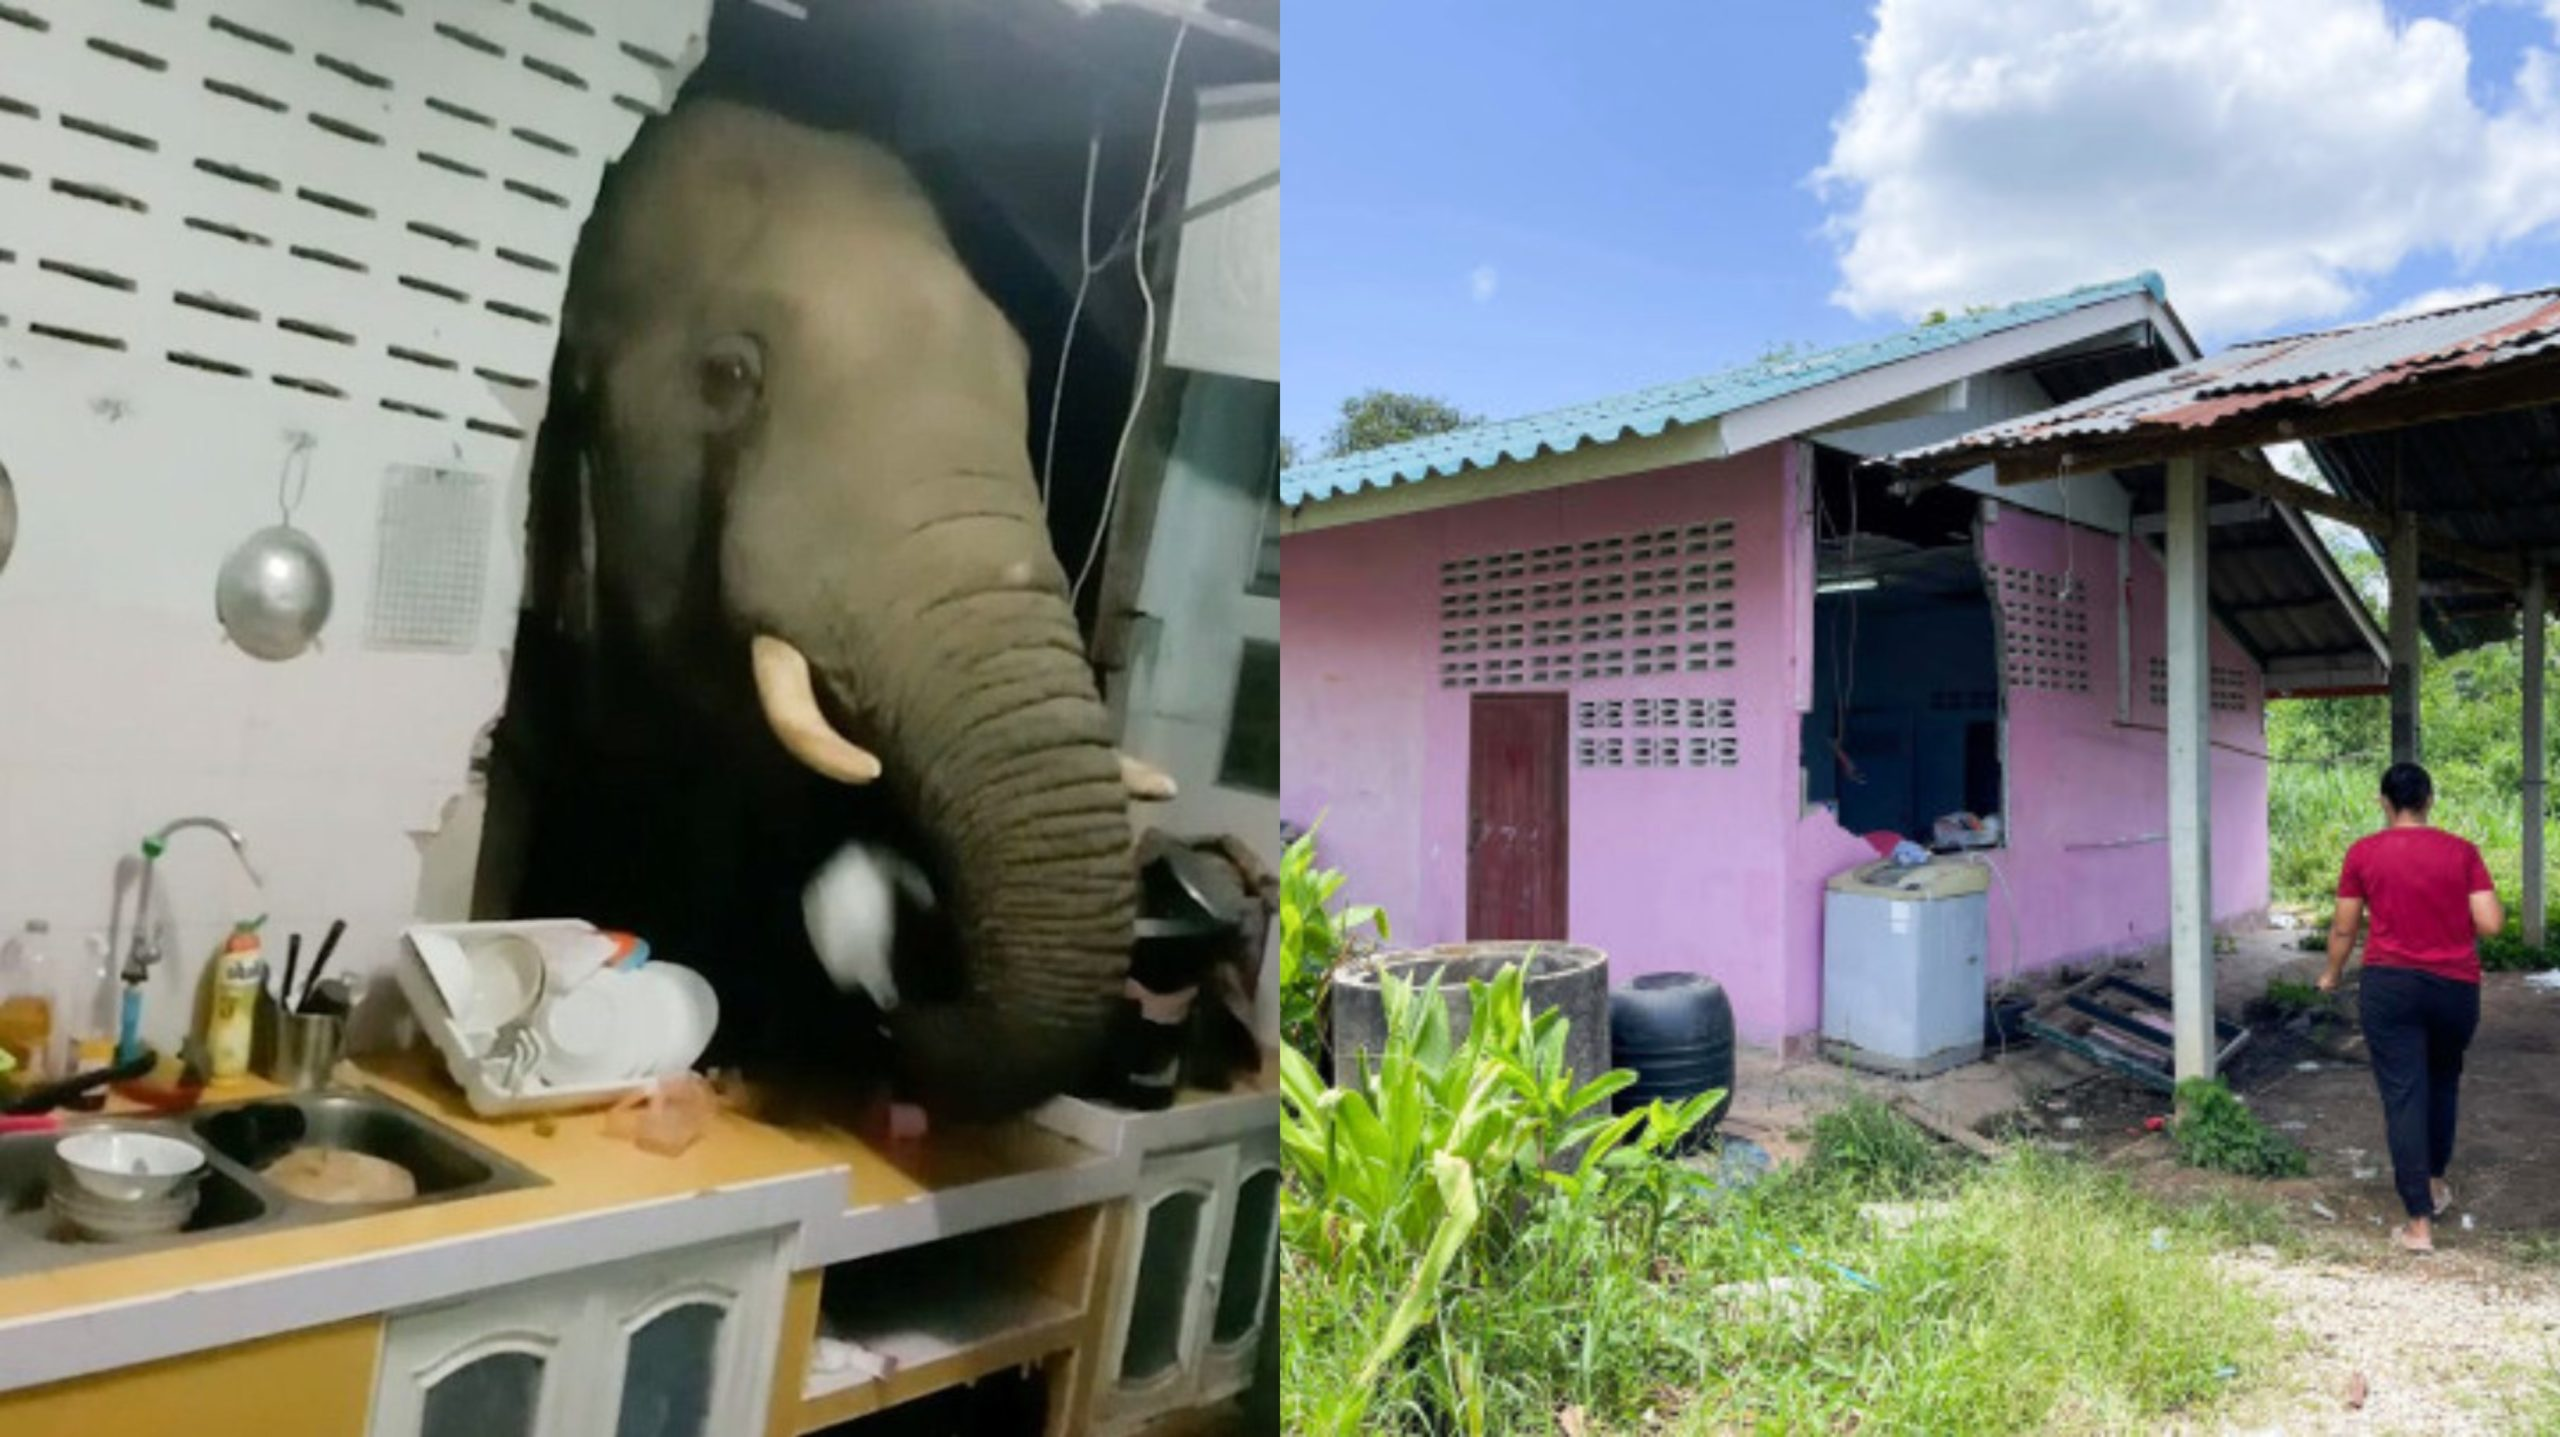 Elephant steals rice from house in Thailand